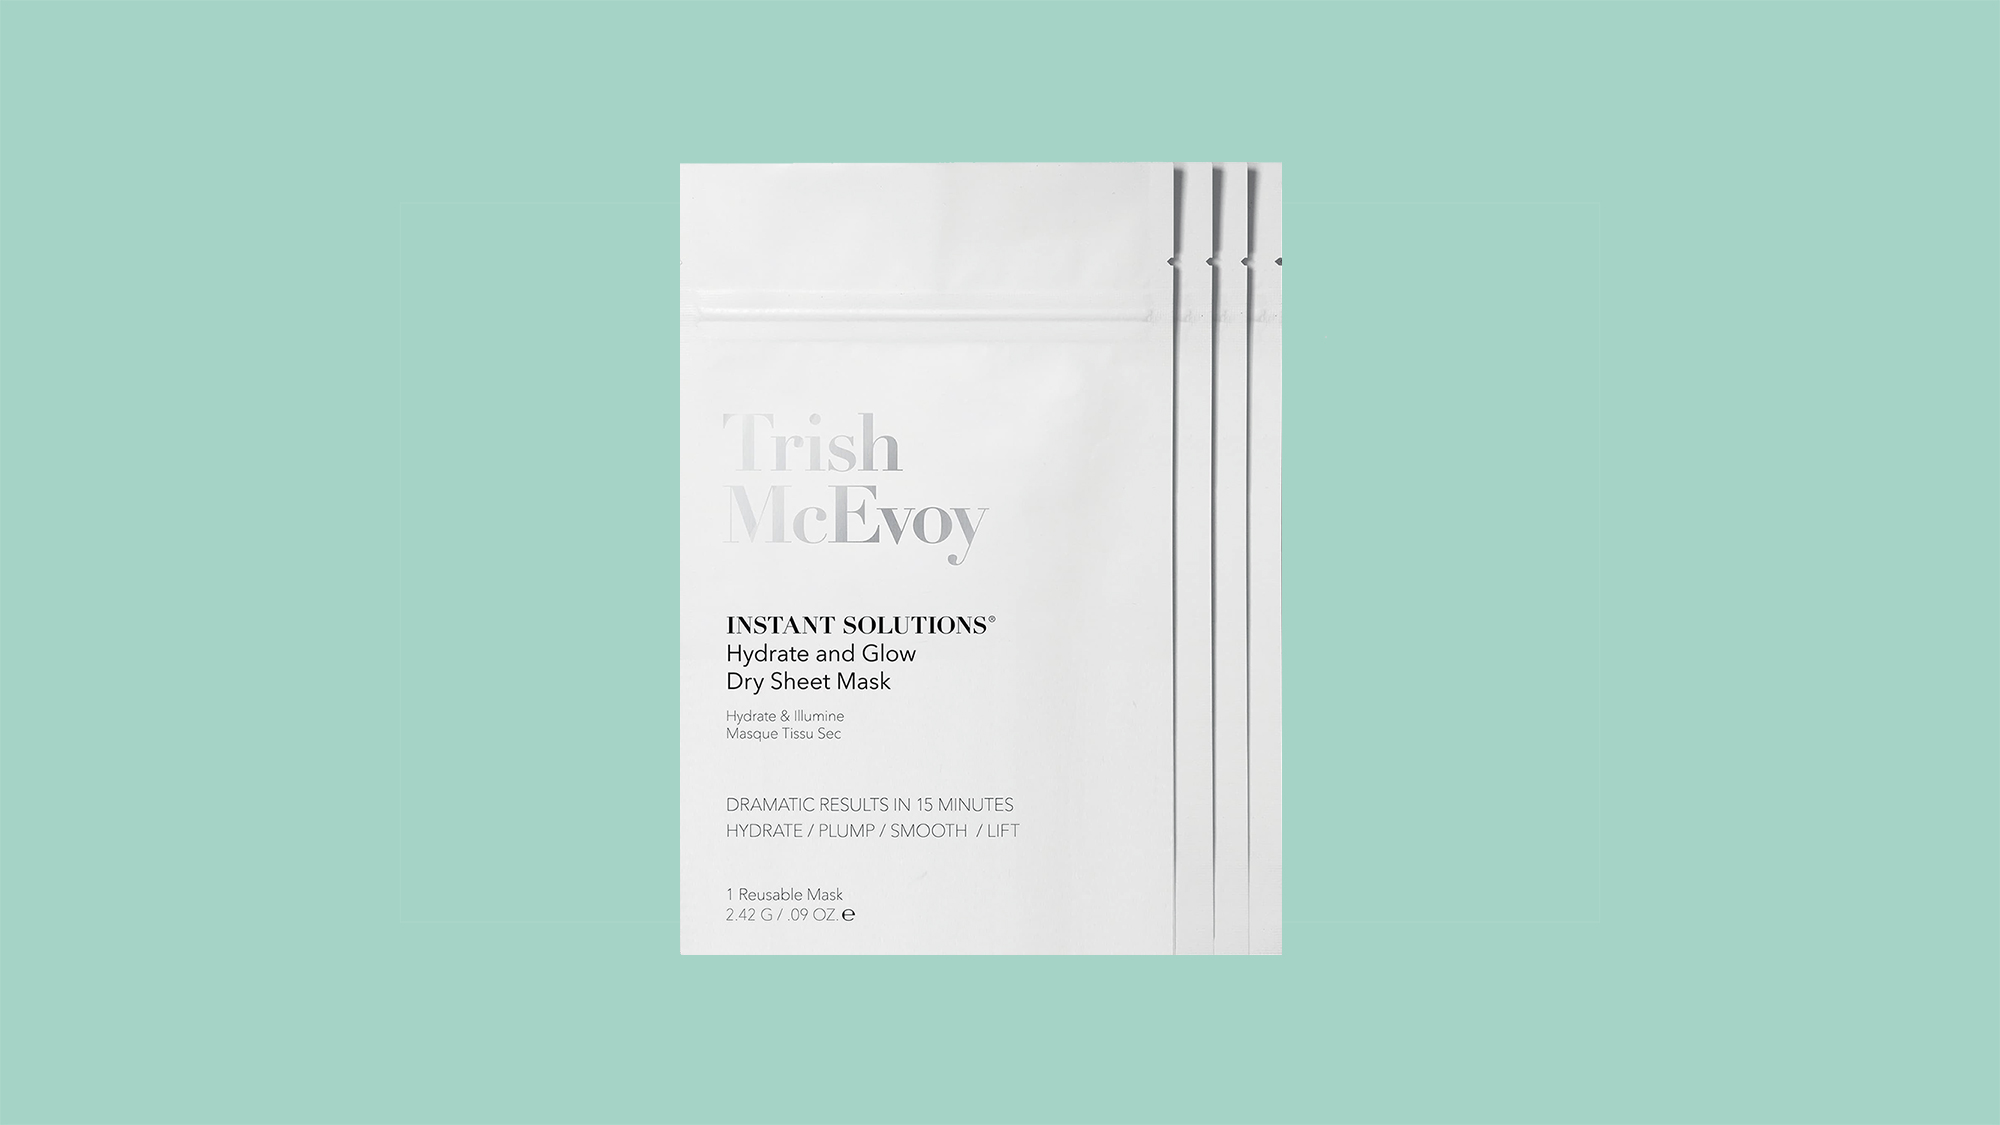 Trish McEvoy 4-Pack Instant Solutions Dry Sheet Mask